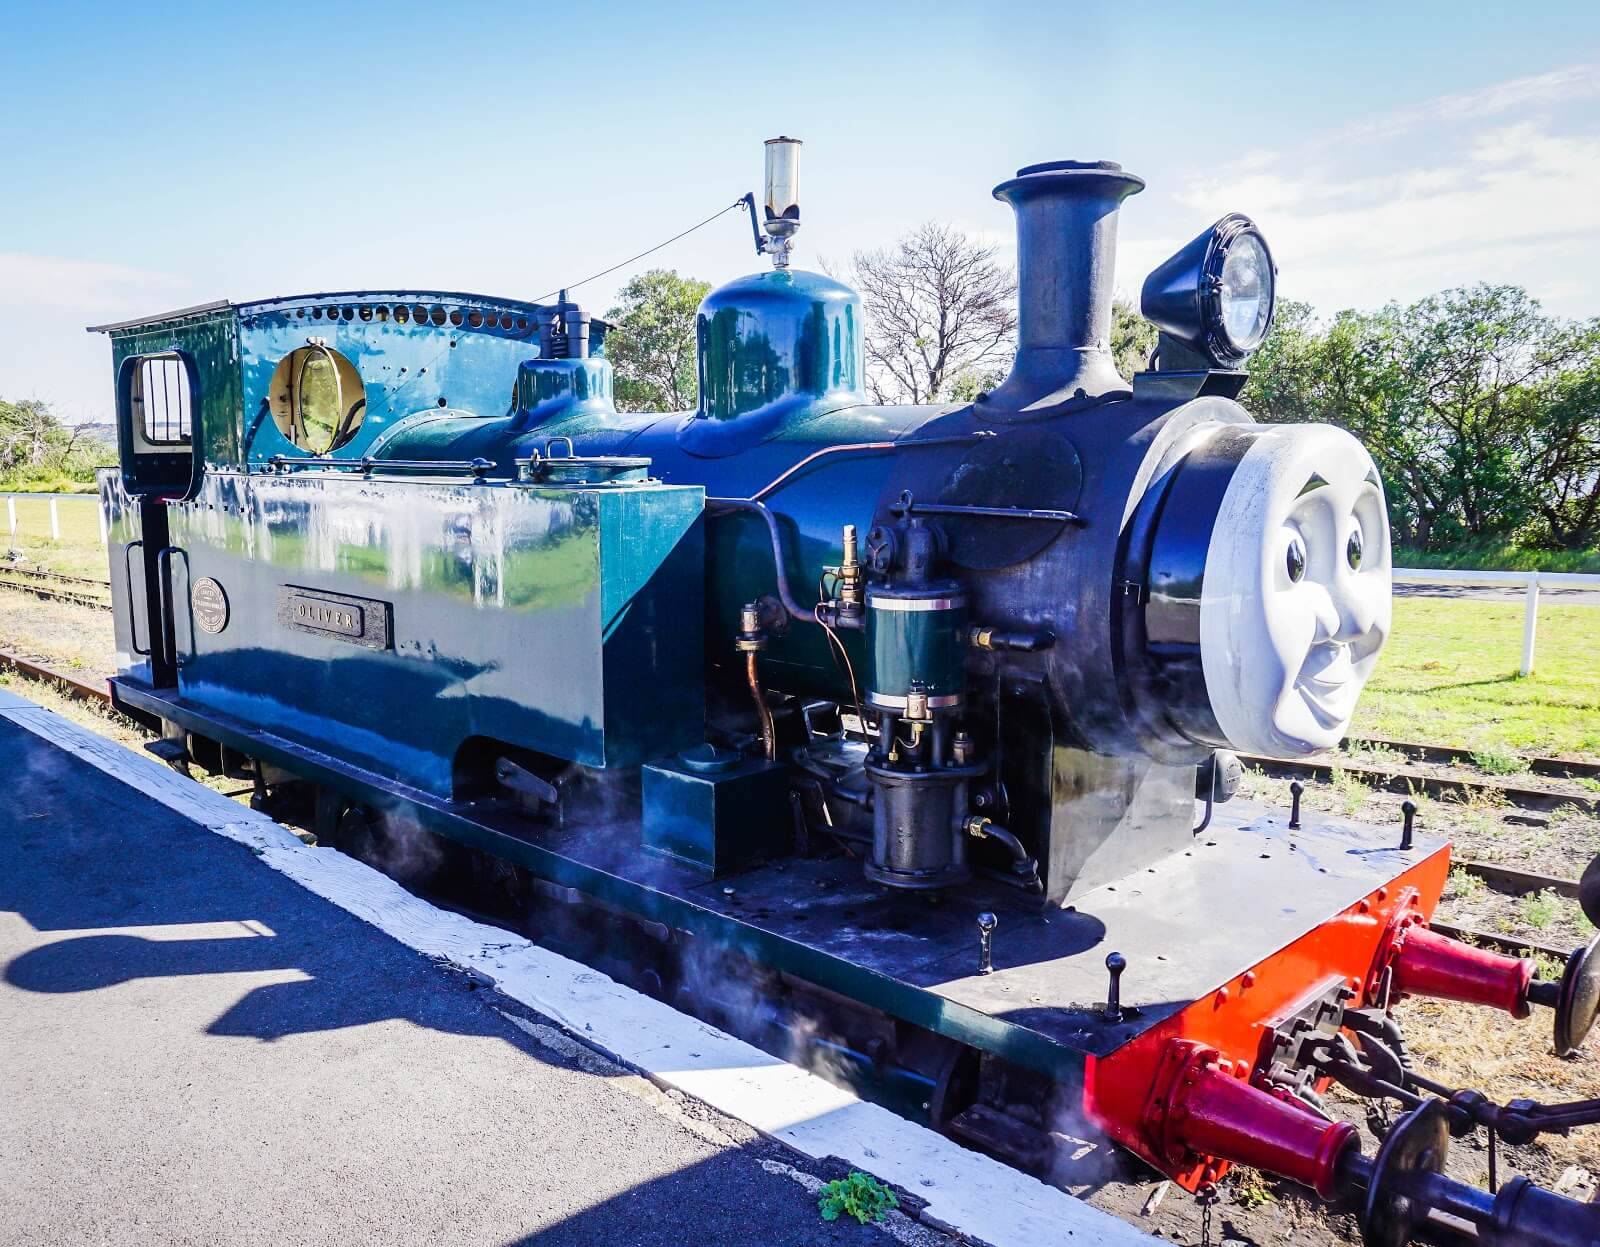 bellarine railway day out with thomas